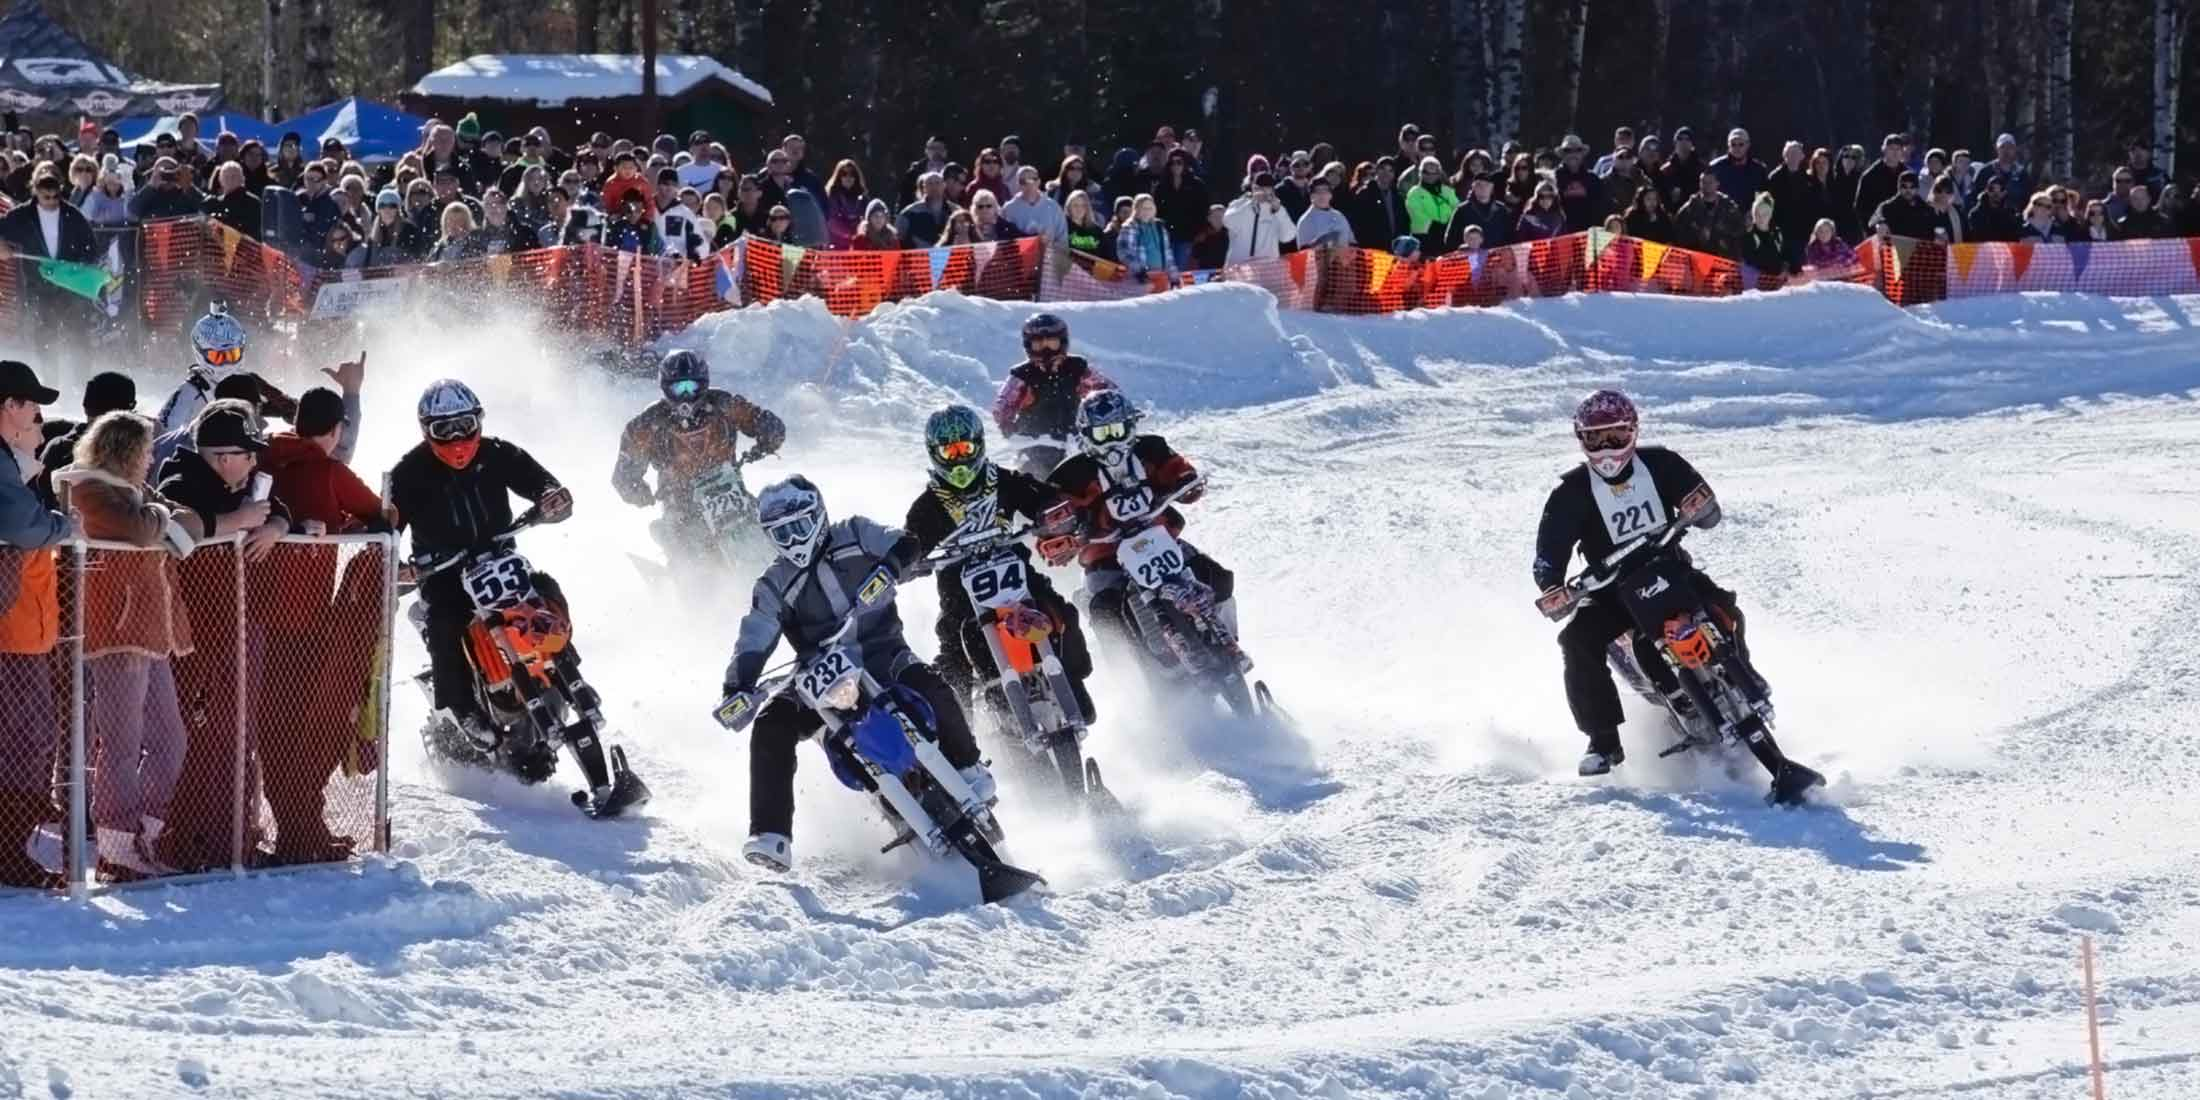 AMA Championship Snow Bike Series. Photo, Ron Dillon